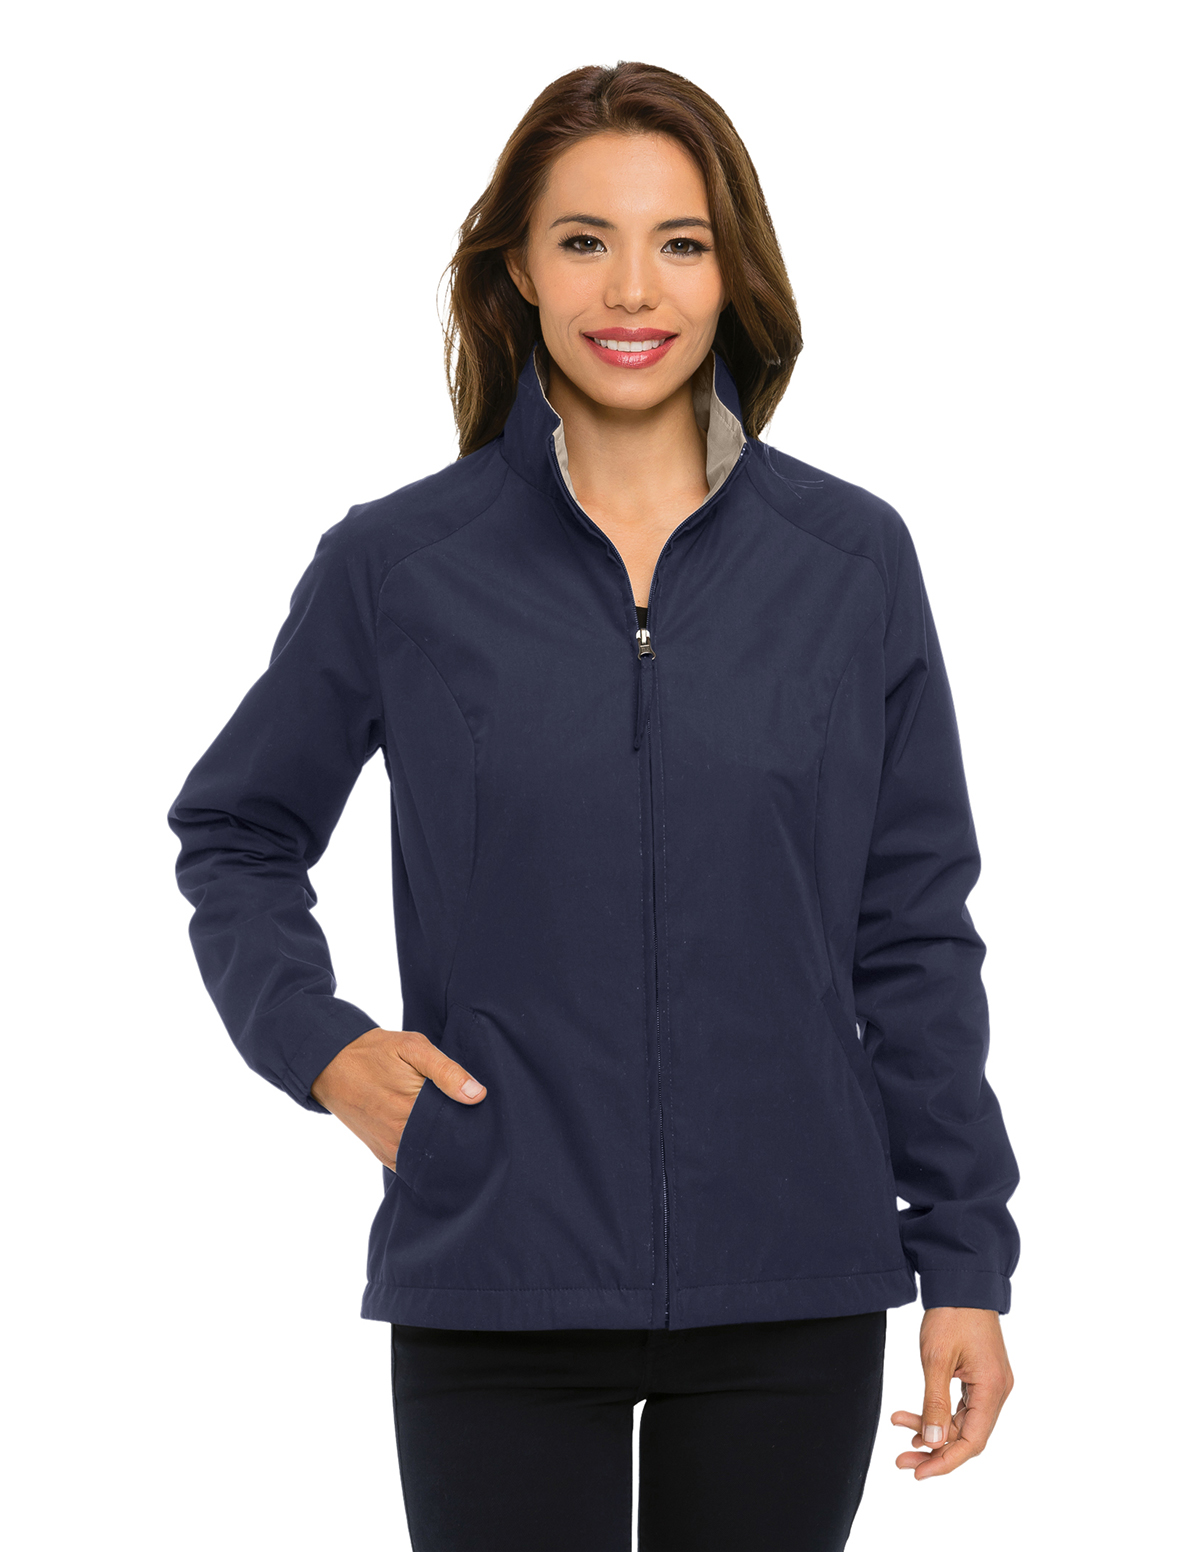 Tri-Mountain JL5308 - Radian Women's Lightweight Poplin ...